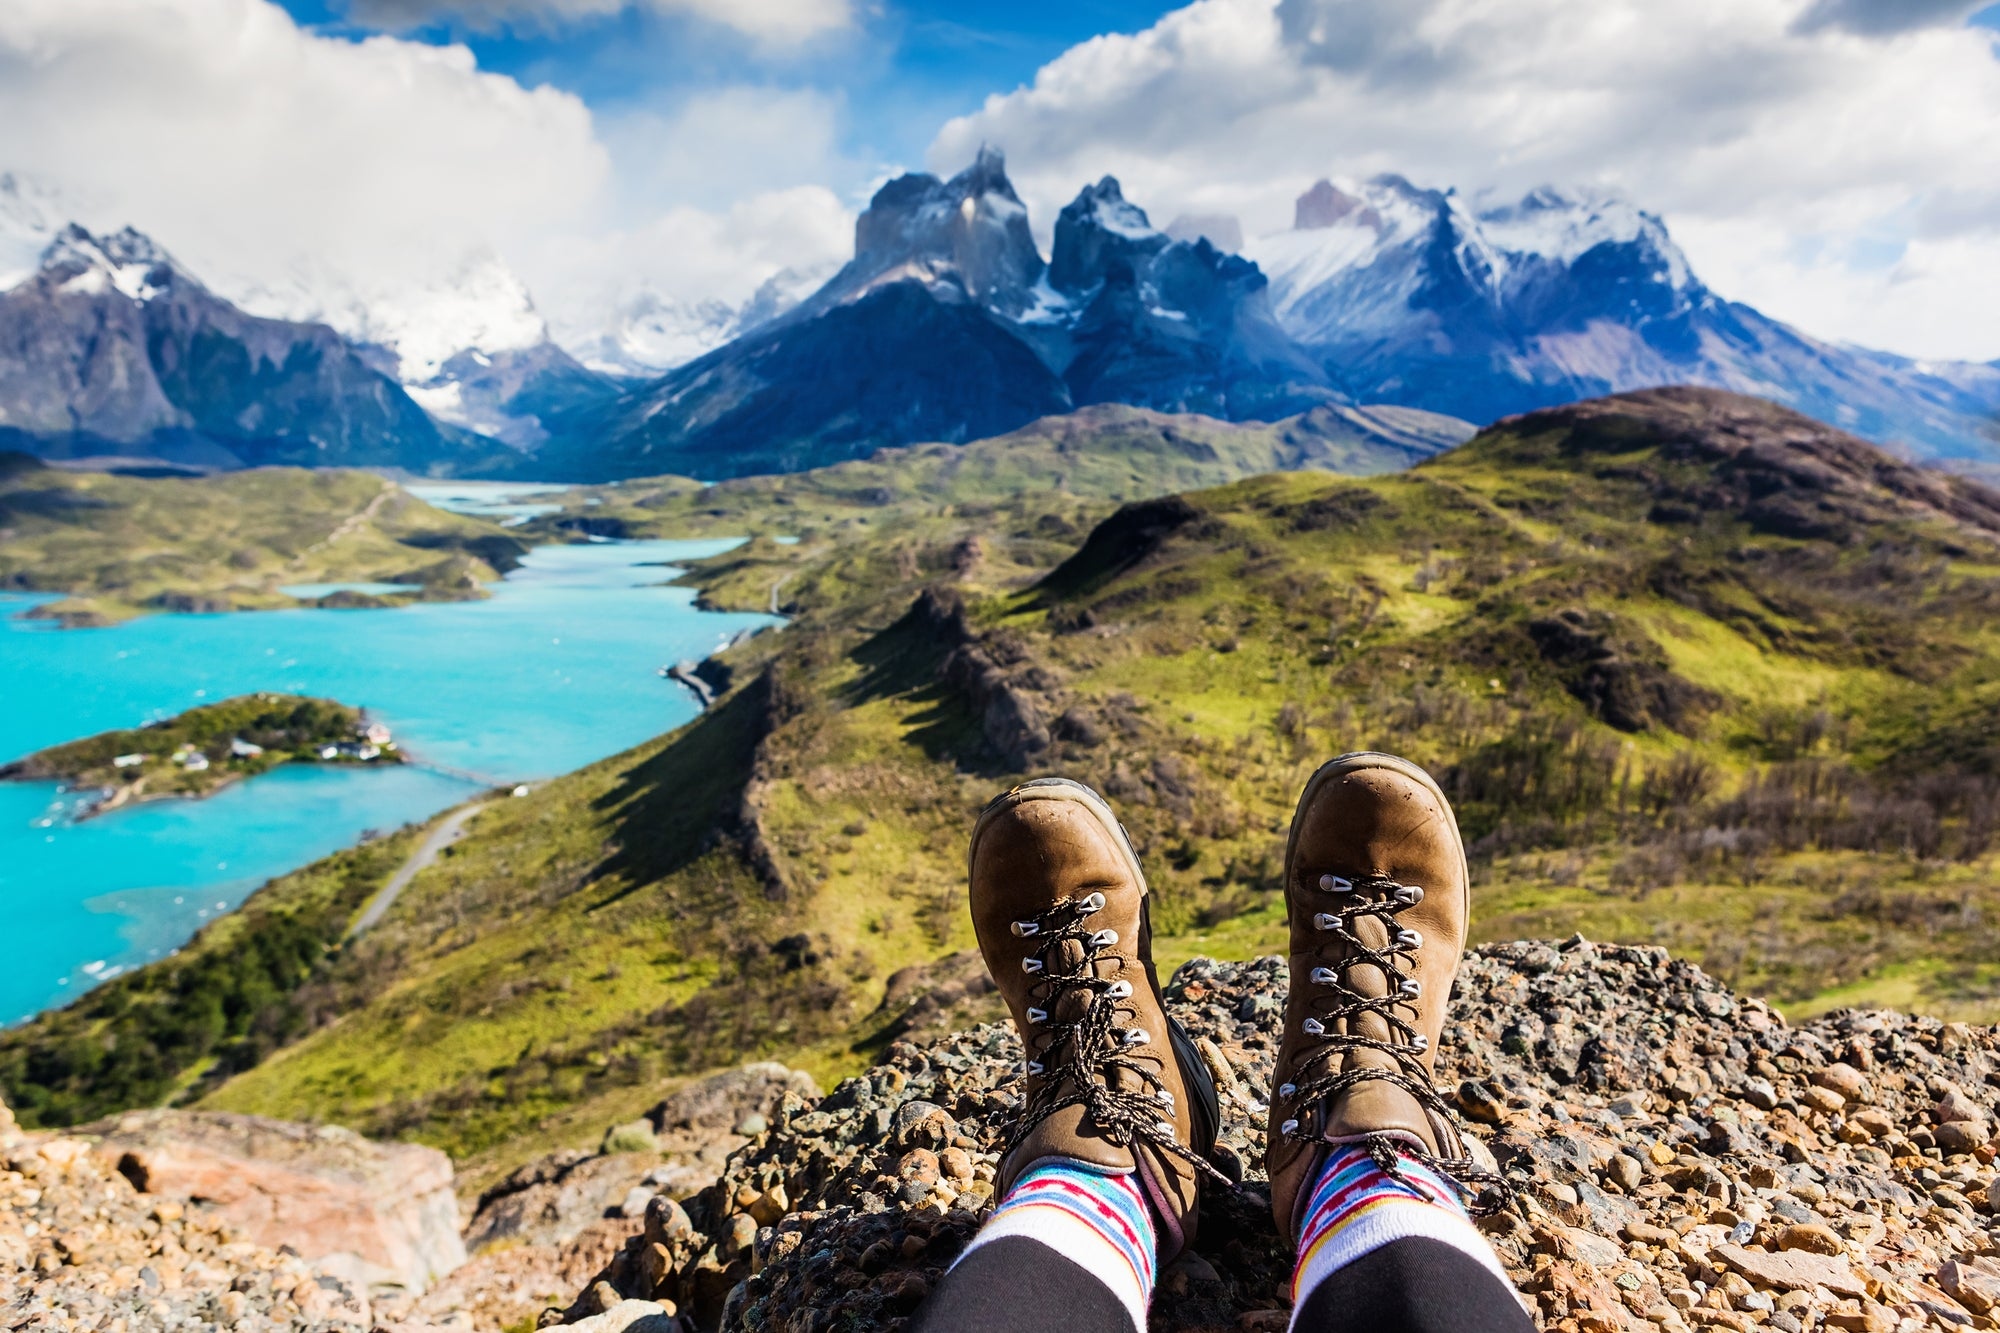 10 Hiking Must-Haves for Your Next Adventure